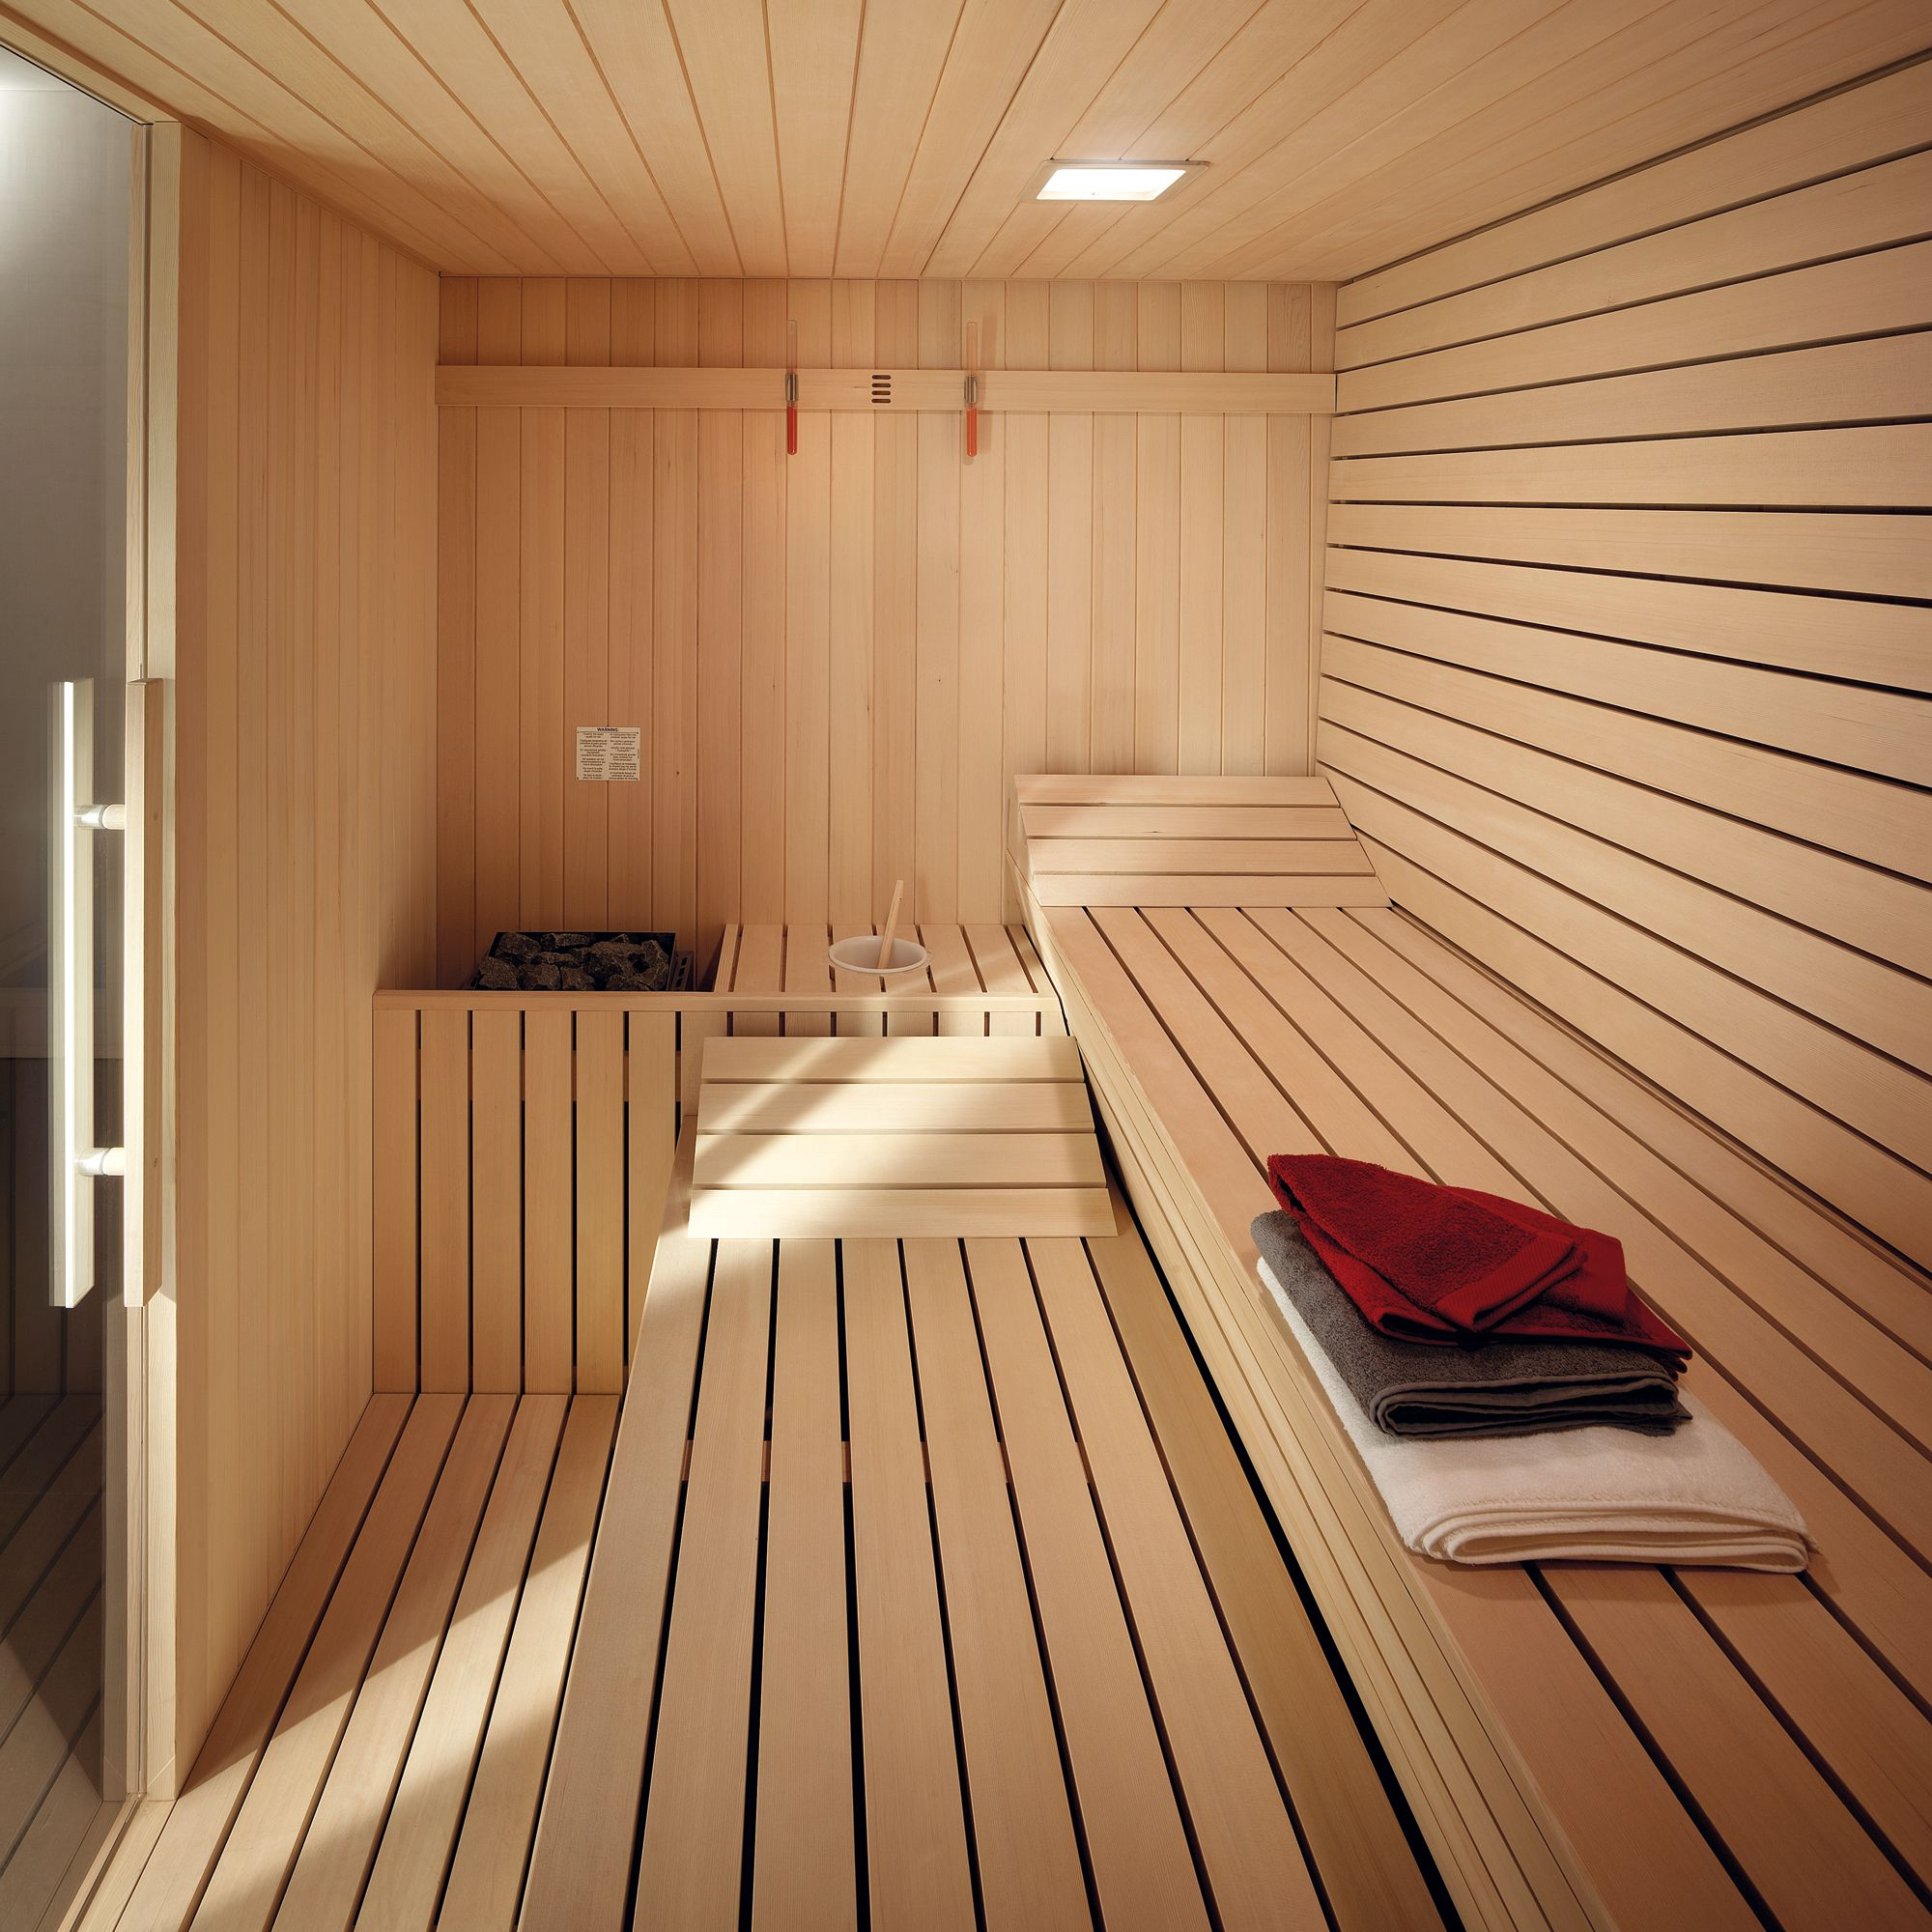 sauna gym effegibi saunas pinterest sauna badezimmer und sauna ideen. Black Bedroom Furniture Sets. Home Design Ideas